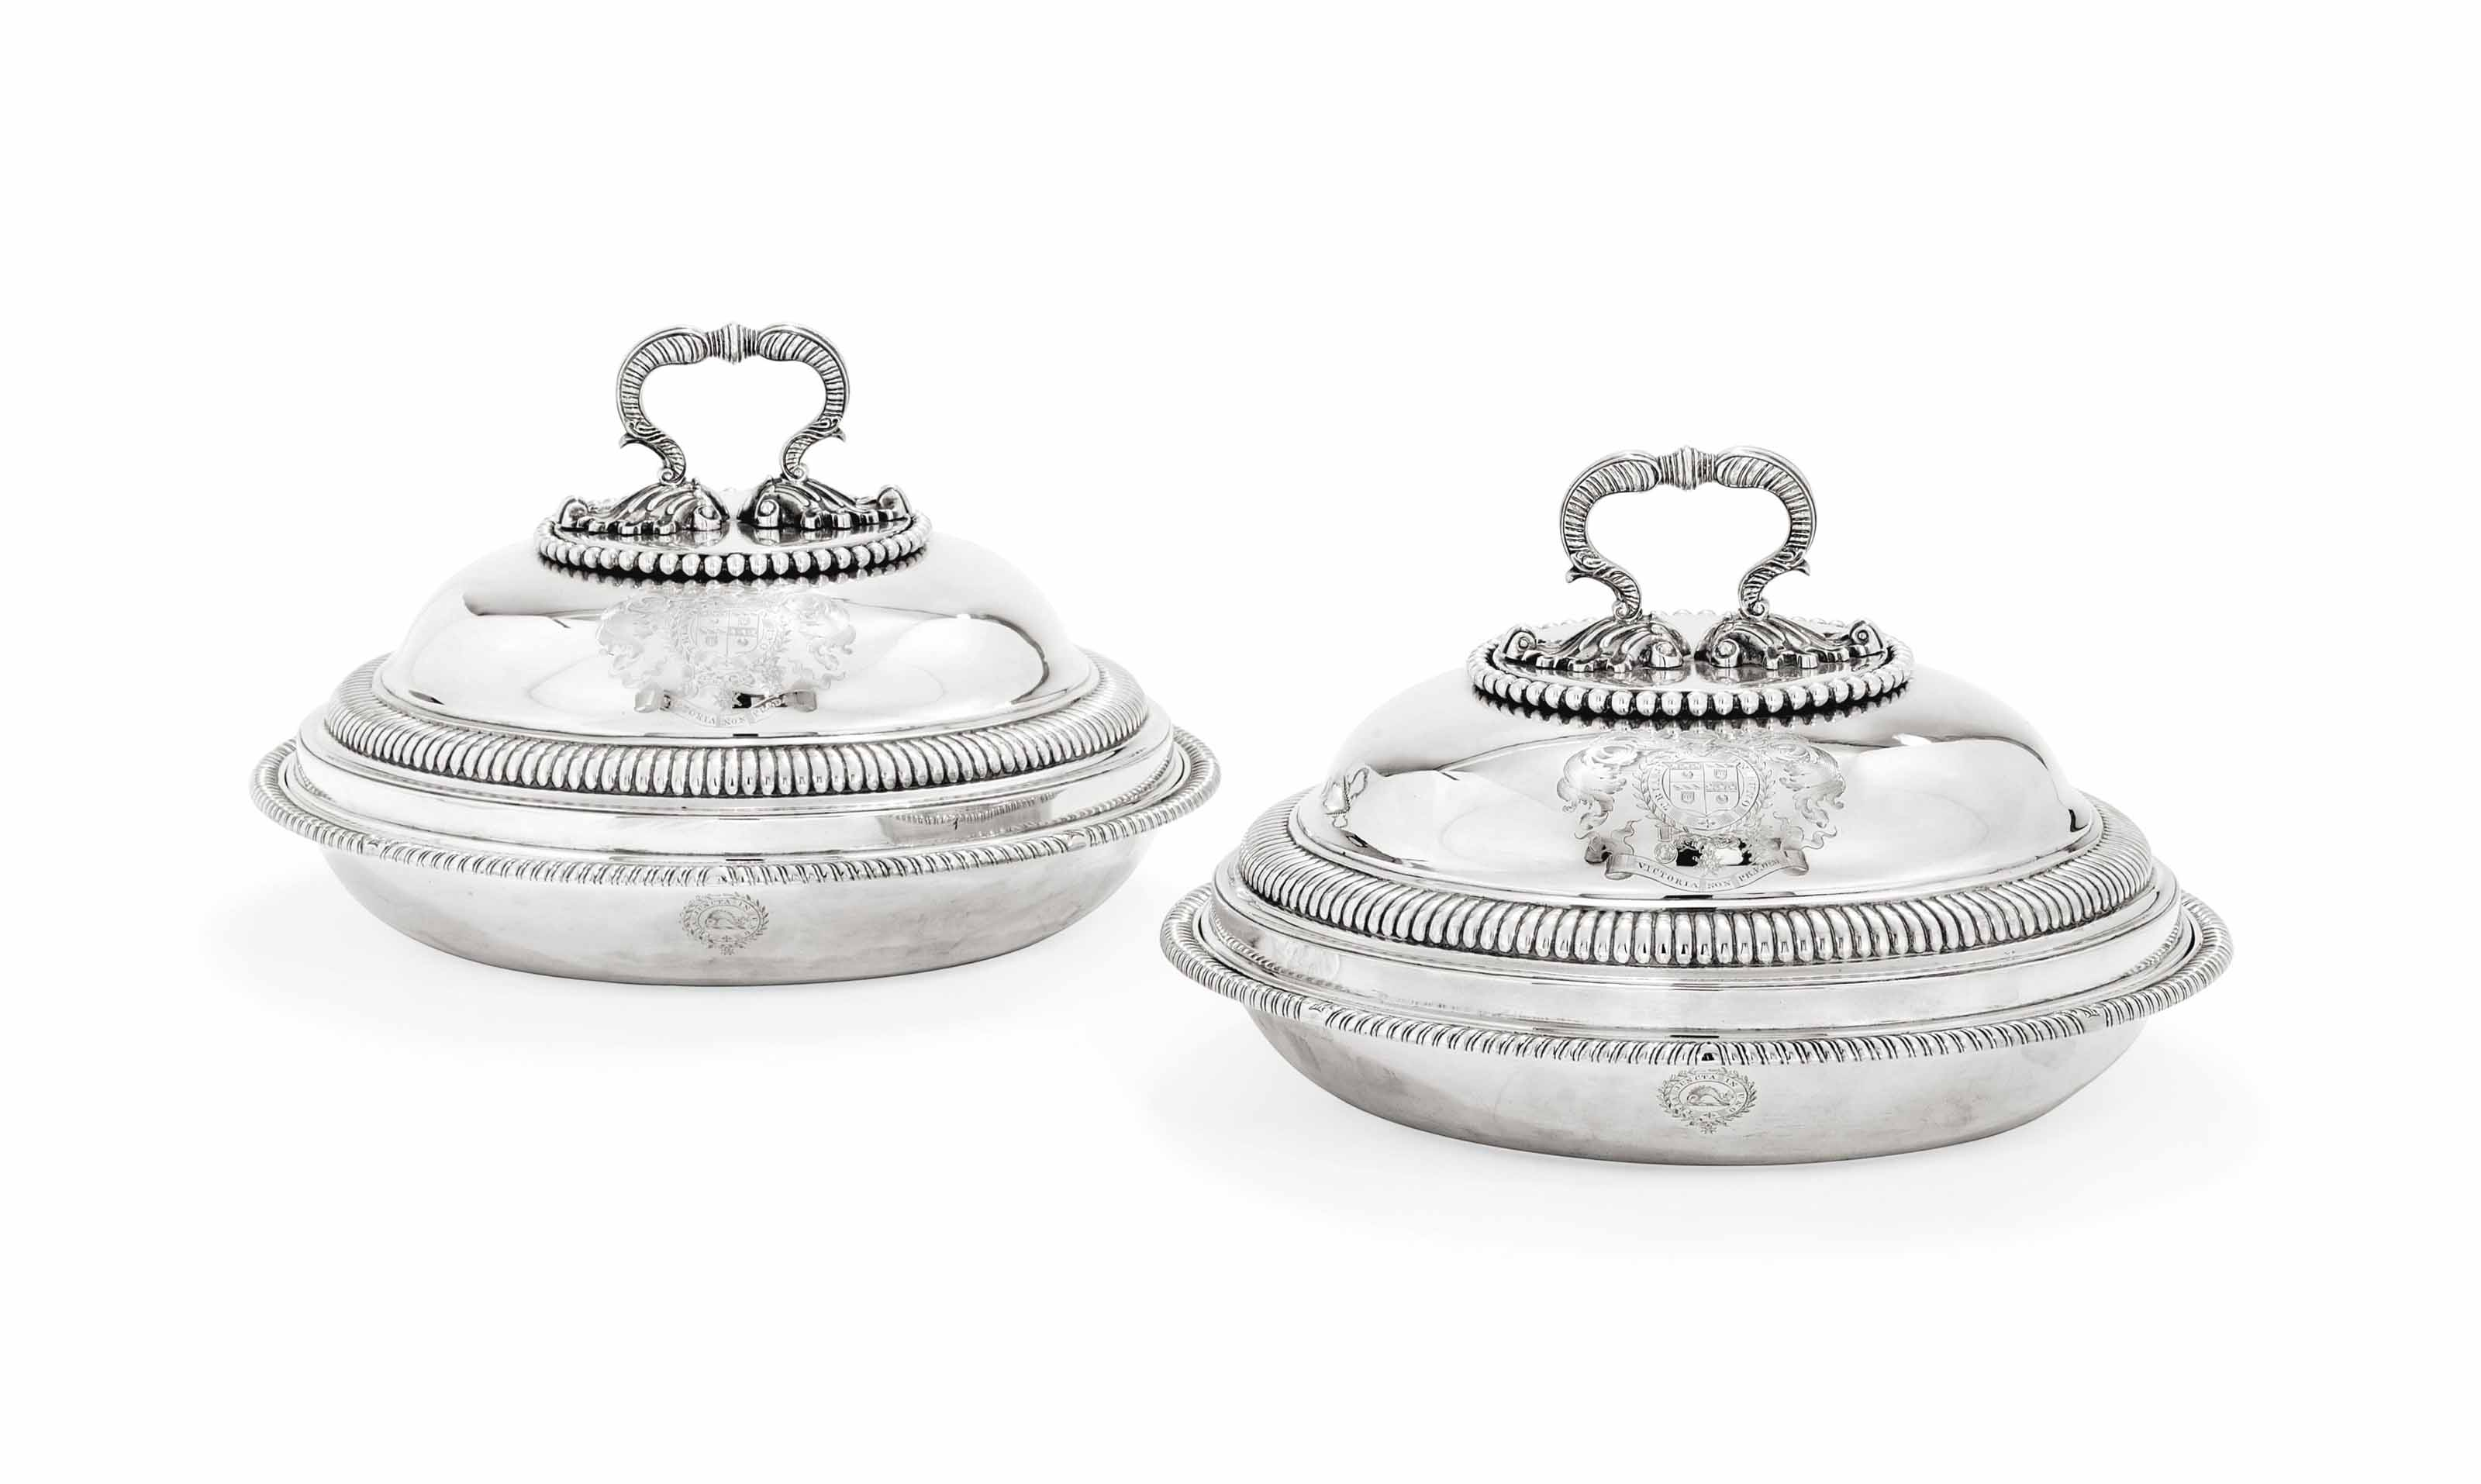 A PAIR OF GEORGE III SILVER ENTREE DISHES, COVERS AND HANDLES